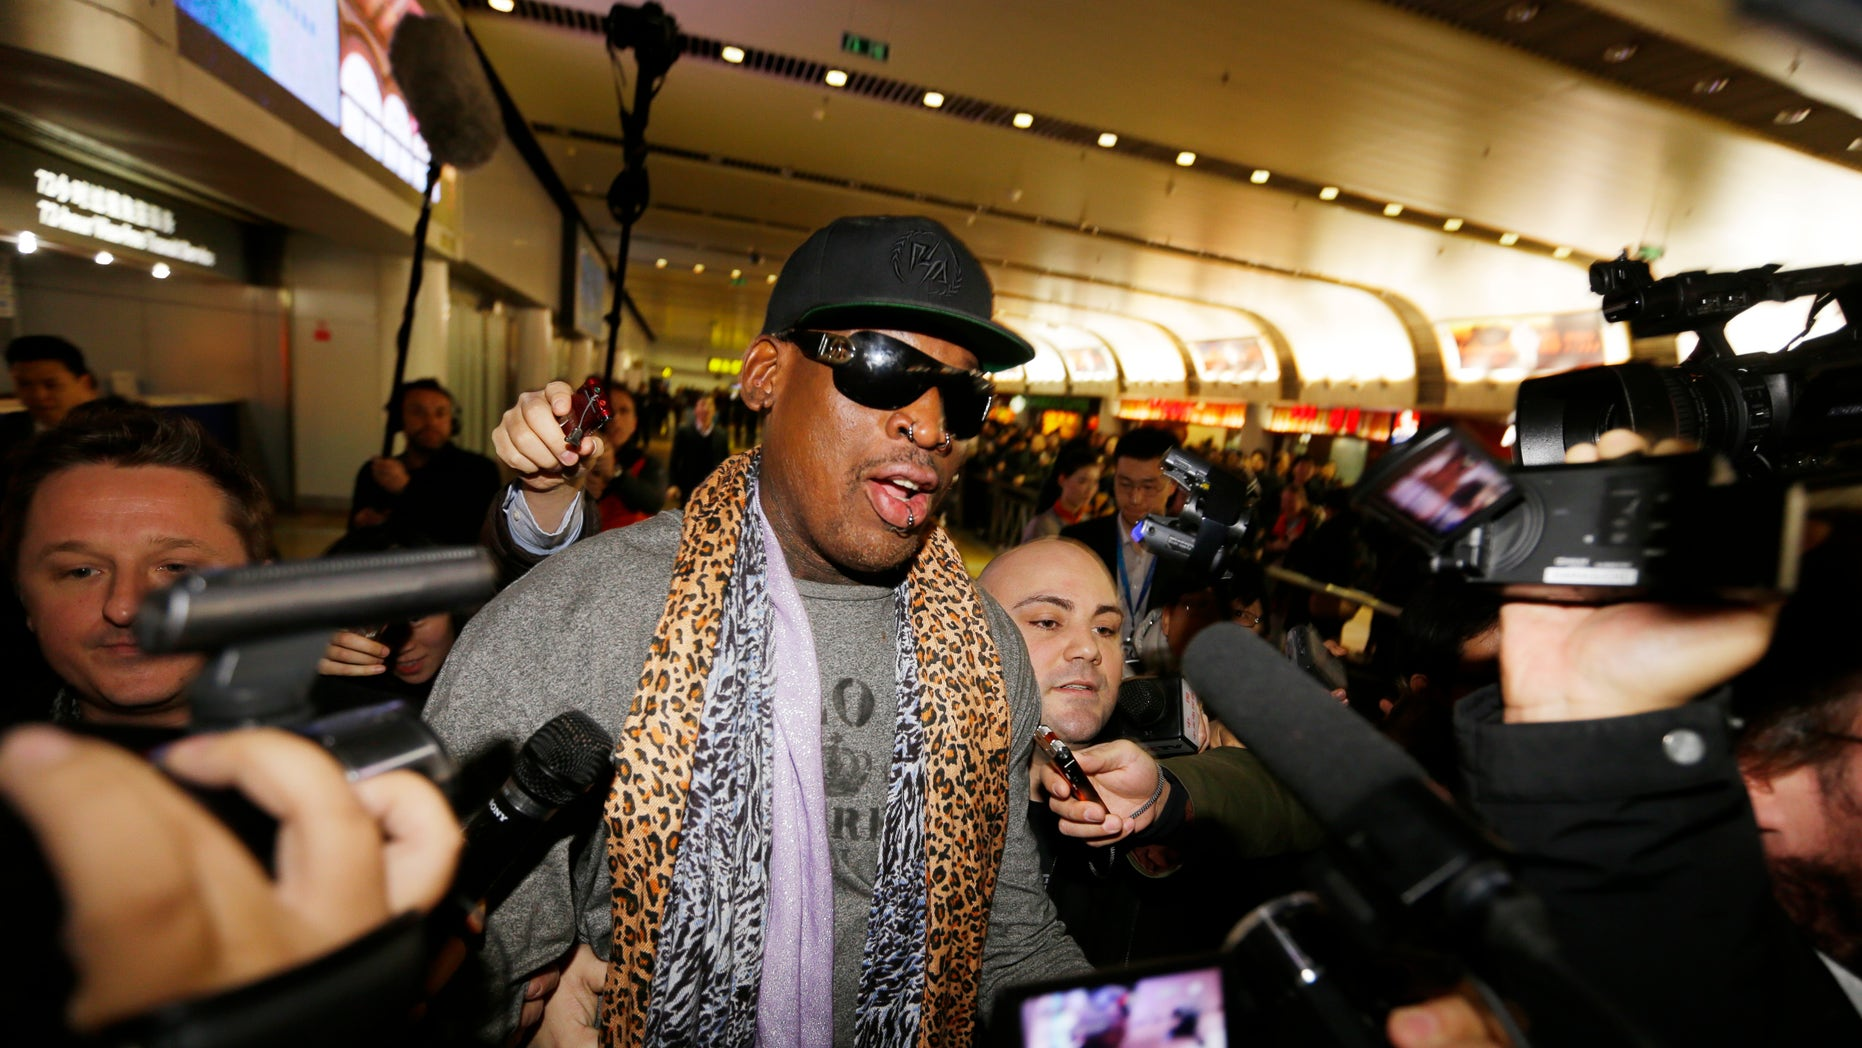 December 23, 2013. Former NBA basketball player Dennis Rodman speaks to the media after returning from his trip to North Korea at Beijing airport.